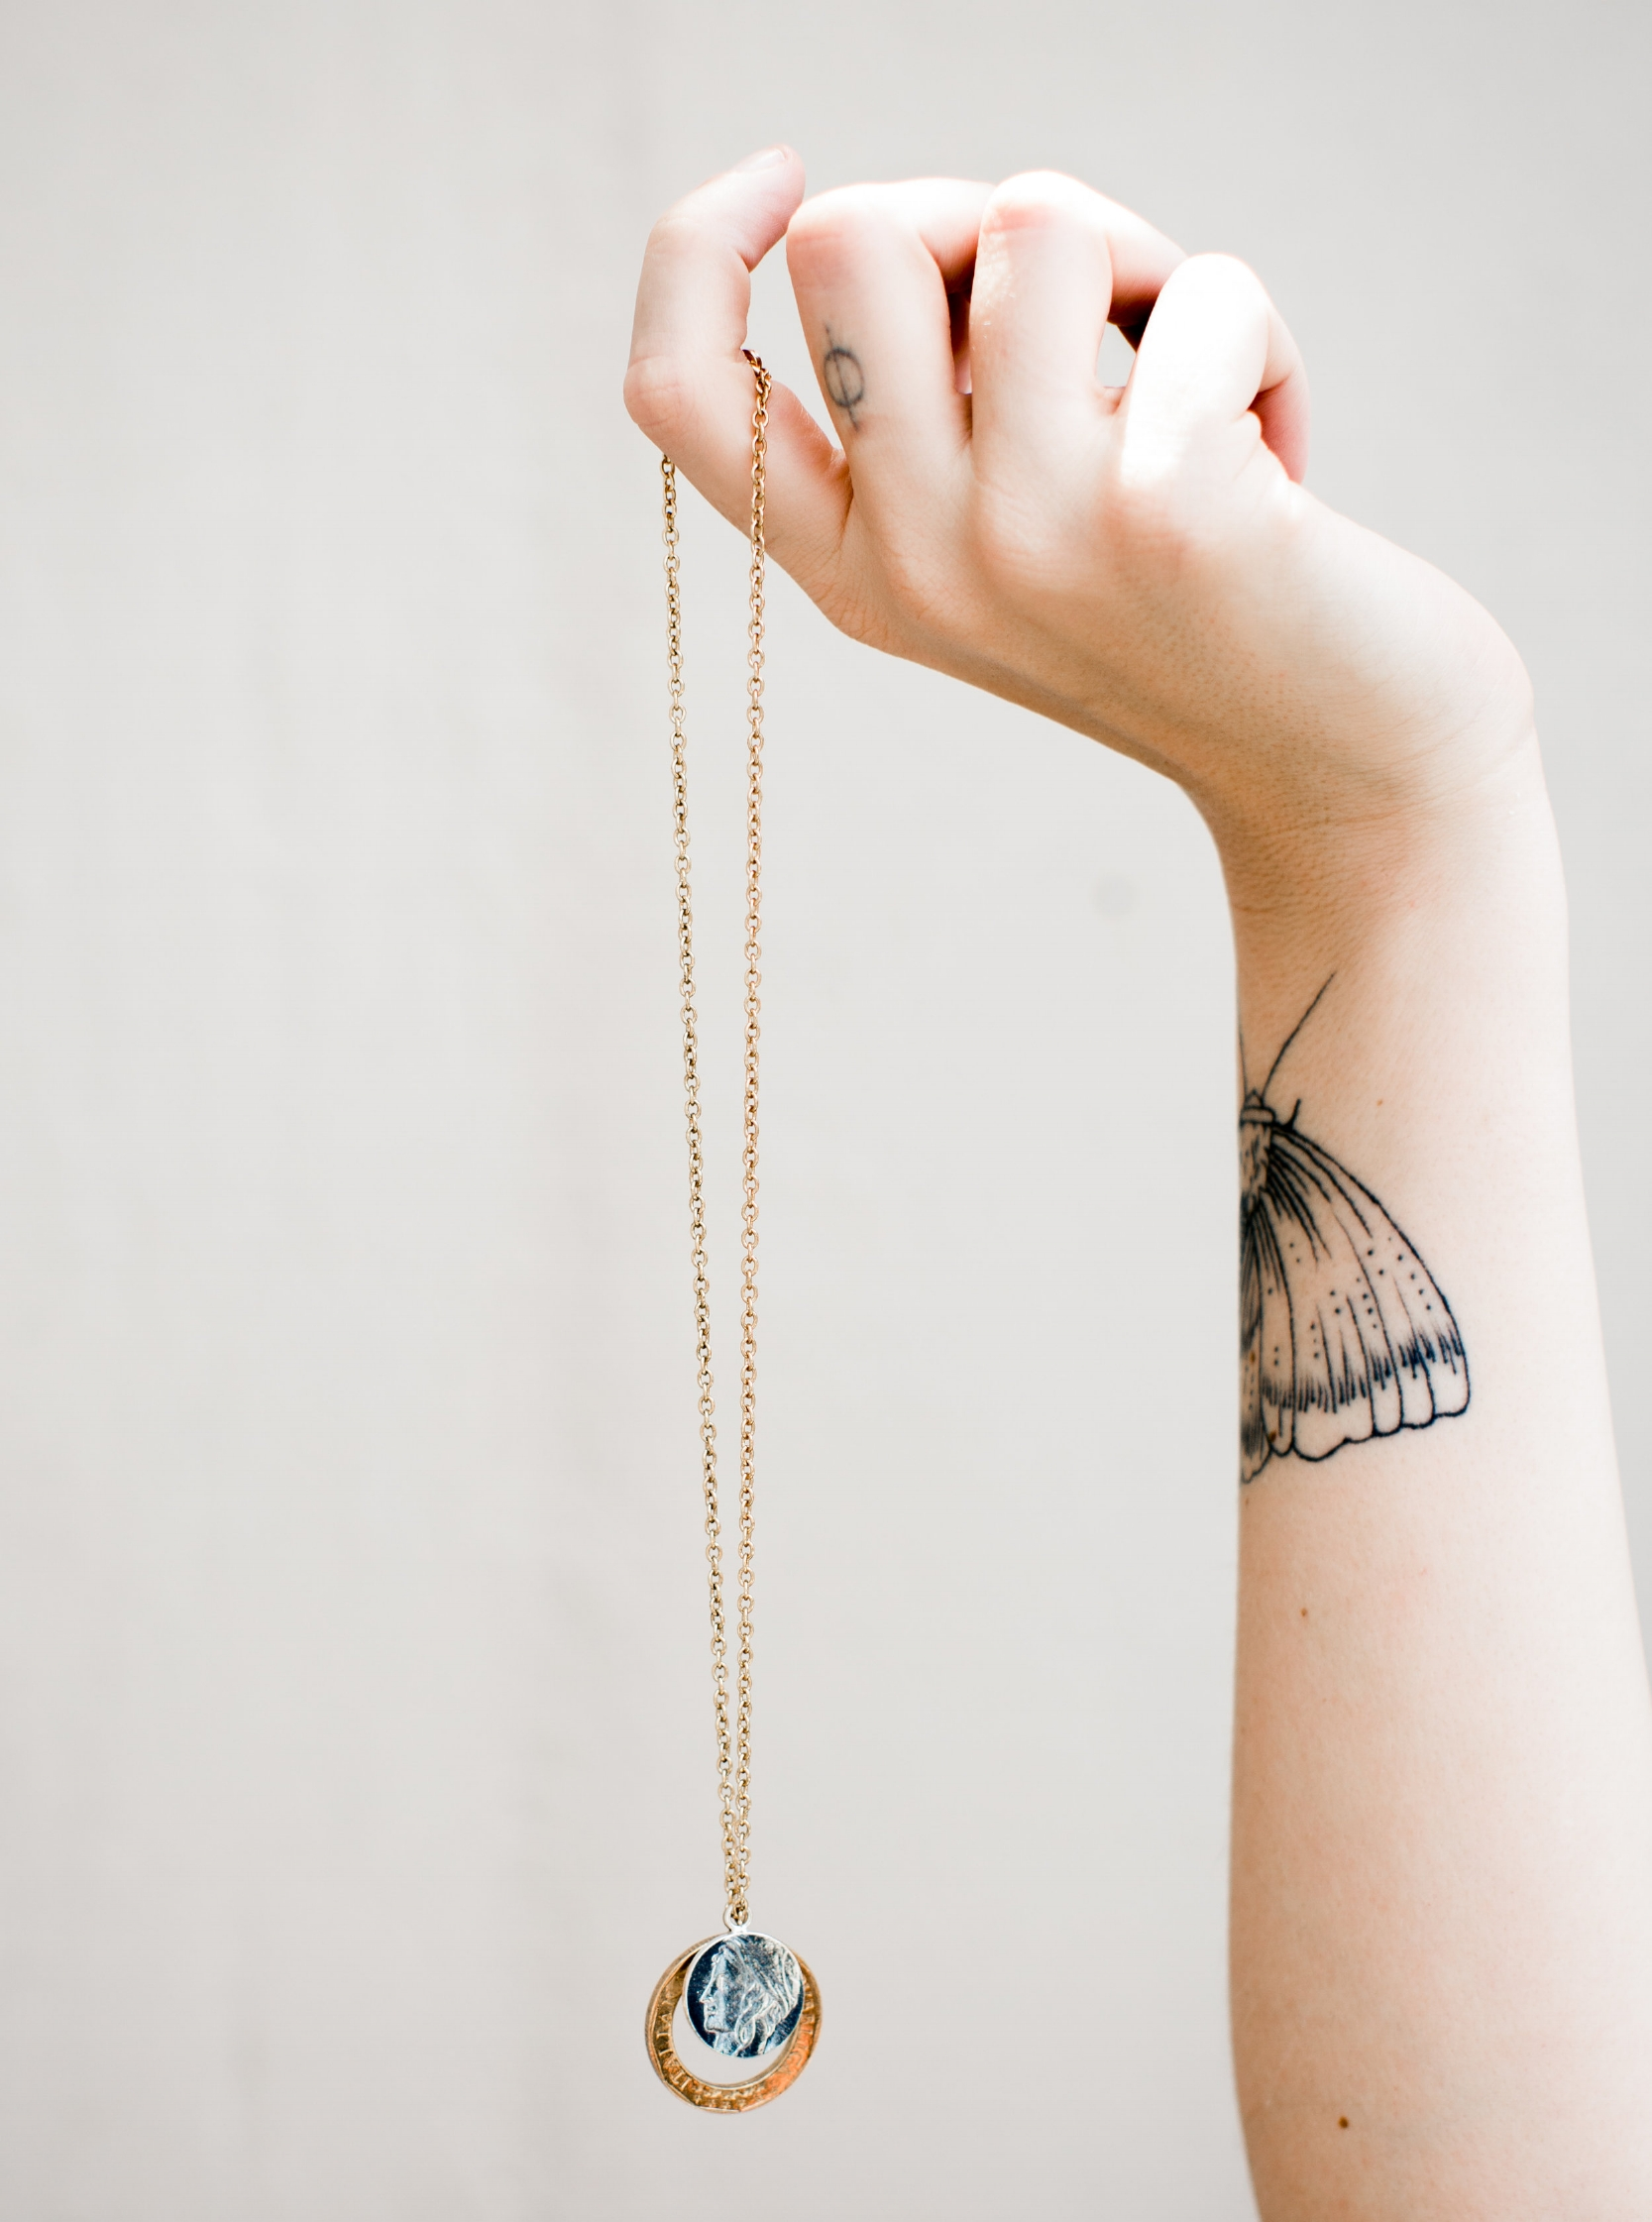 CHANGE FOR GOOD - Our goal is to create beautiful jewelry that not only makes a fashion statement, but also sparks an important conversation. Atlanta ranks among the top cities for the highest rate of human trafficking, and we are dedicated to fighting for change. Shopping with us makes an impact you can be proud of.